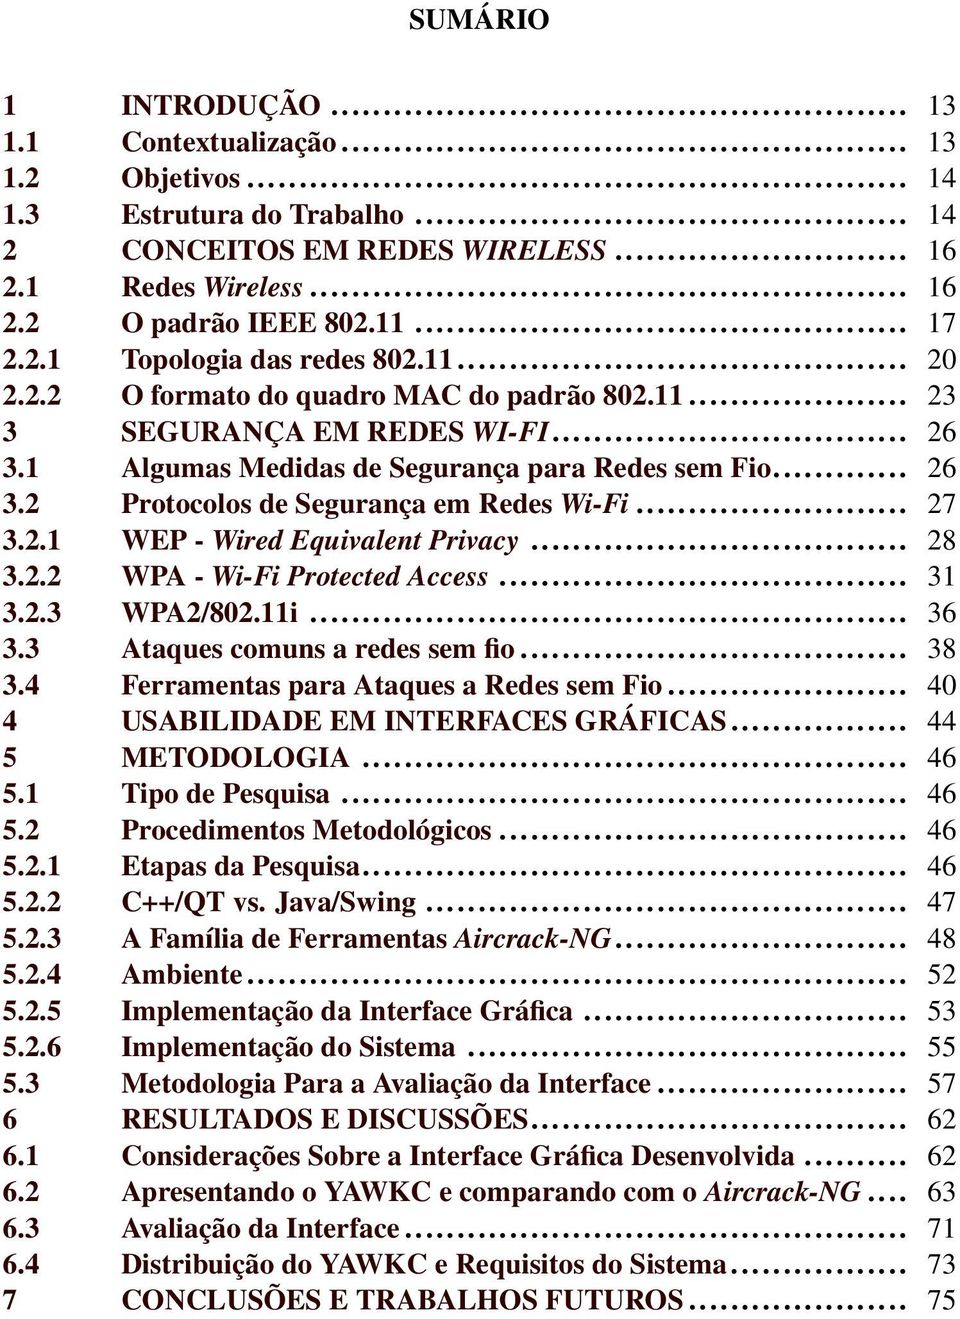 .. 27 3.2.1 WEP - Wired Equivalent Privacy... 28 3.2.2 WPA - Wi-Fi Protected Access... 31 3.2.3 WPA2/802.11i... 36 3.3 Ataques comuns a redes sem fio... 38 3.